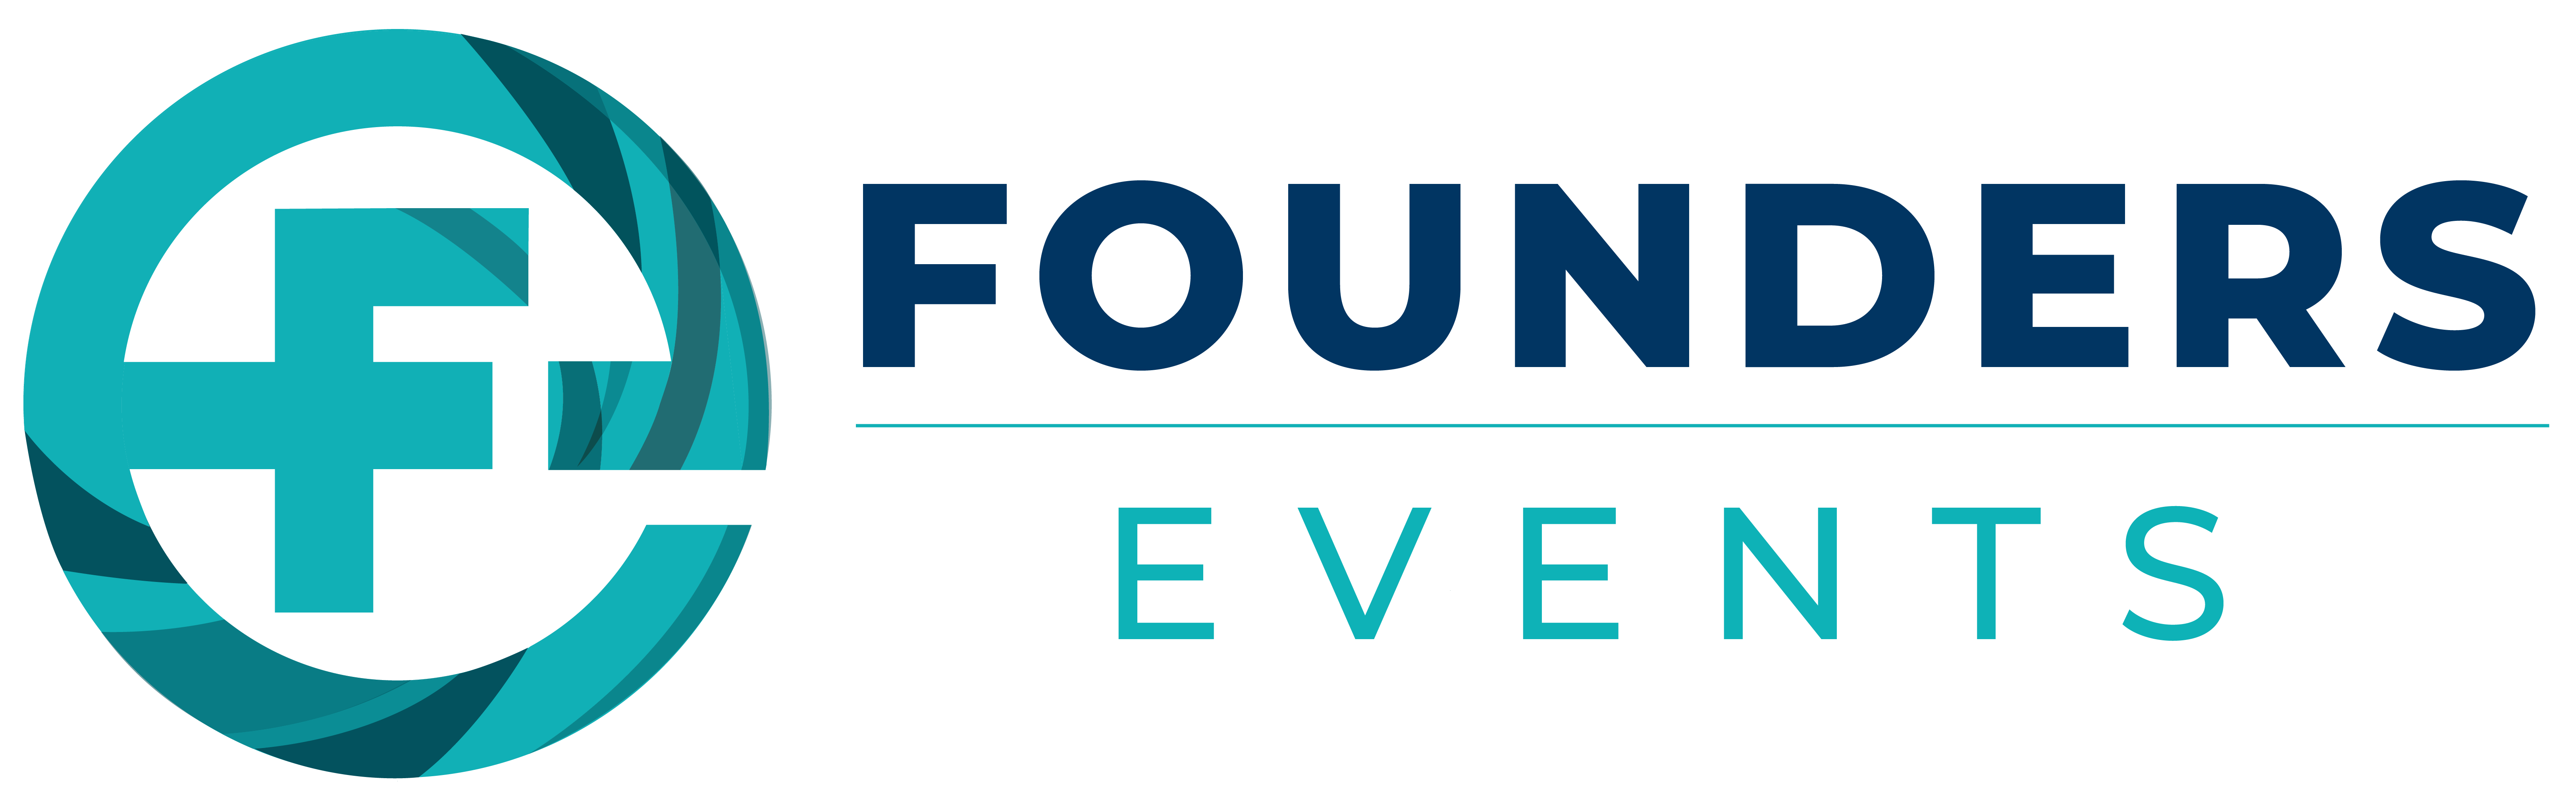 Founders Events